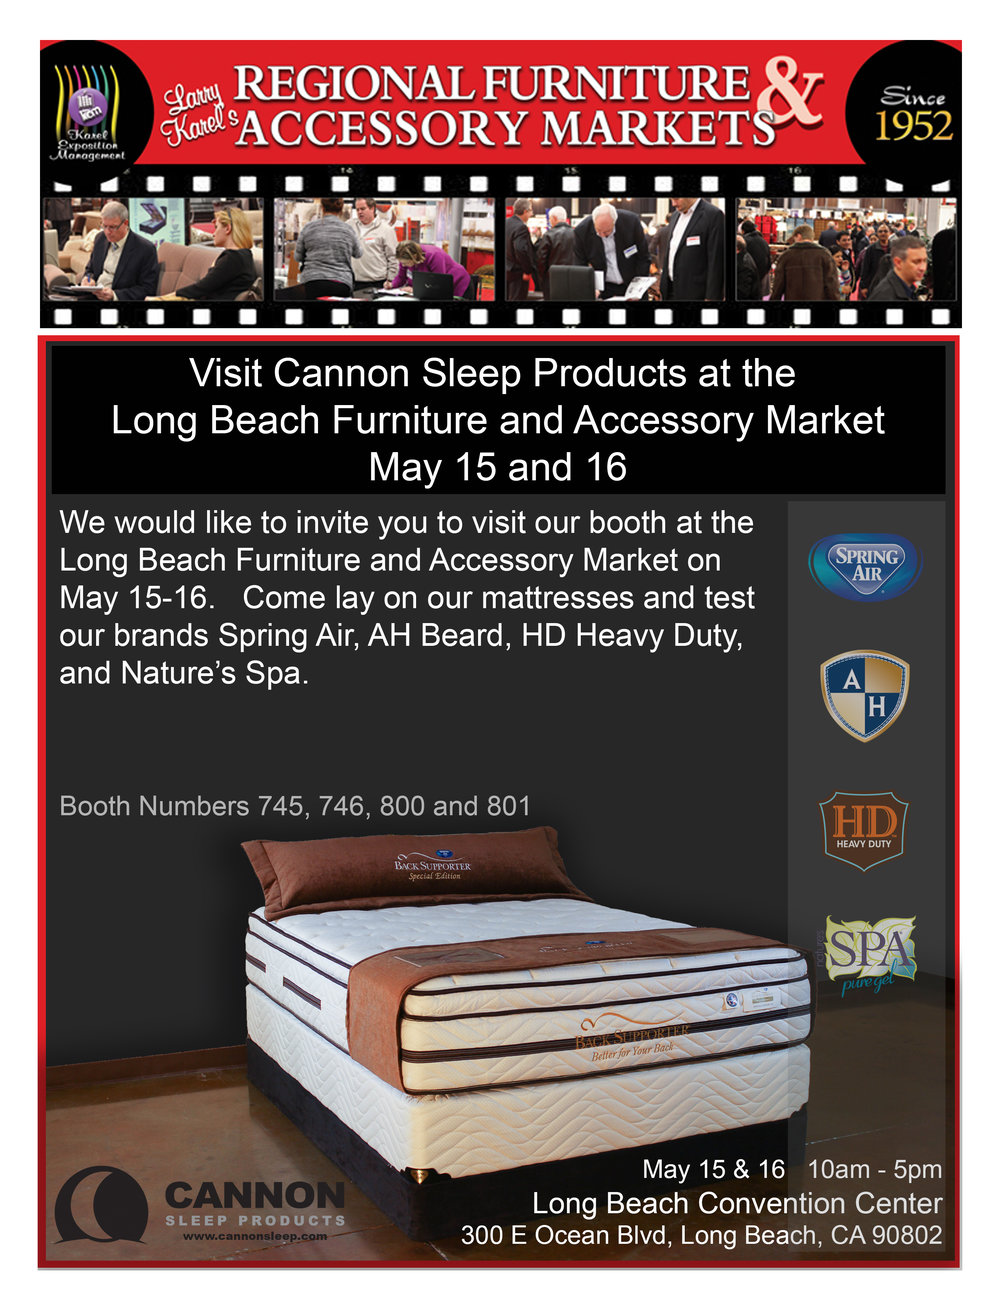 Cannon Sleep Products At The Long Beach Furniture And Accessory Market